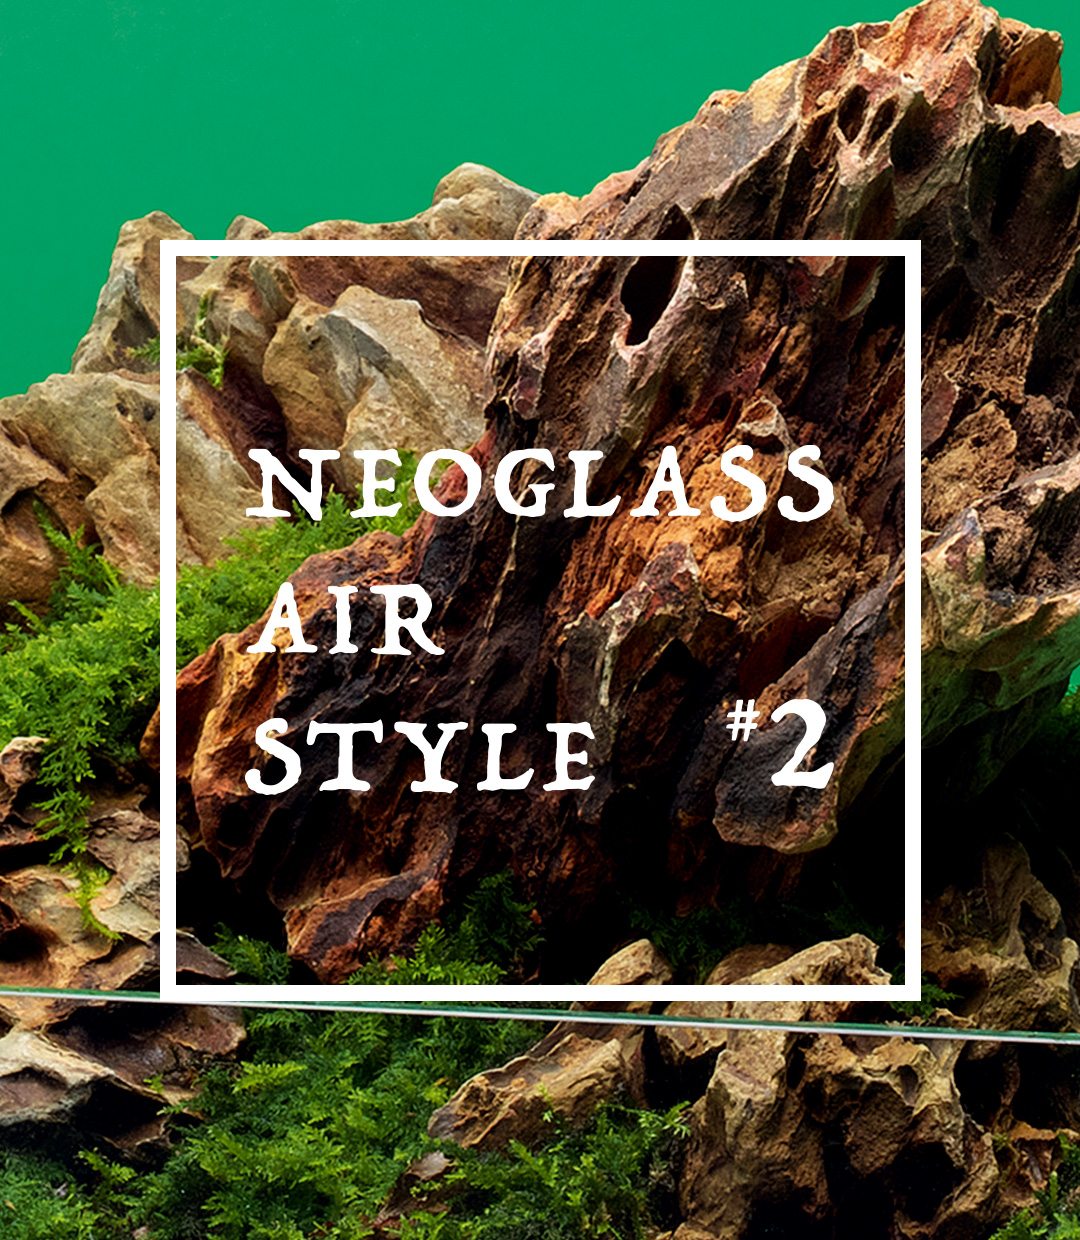 NEOGLASS AIR STYLE #2